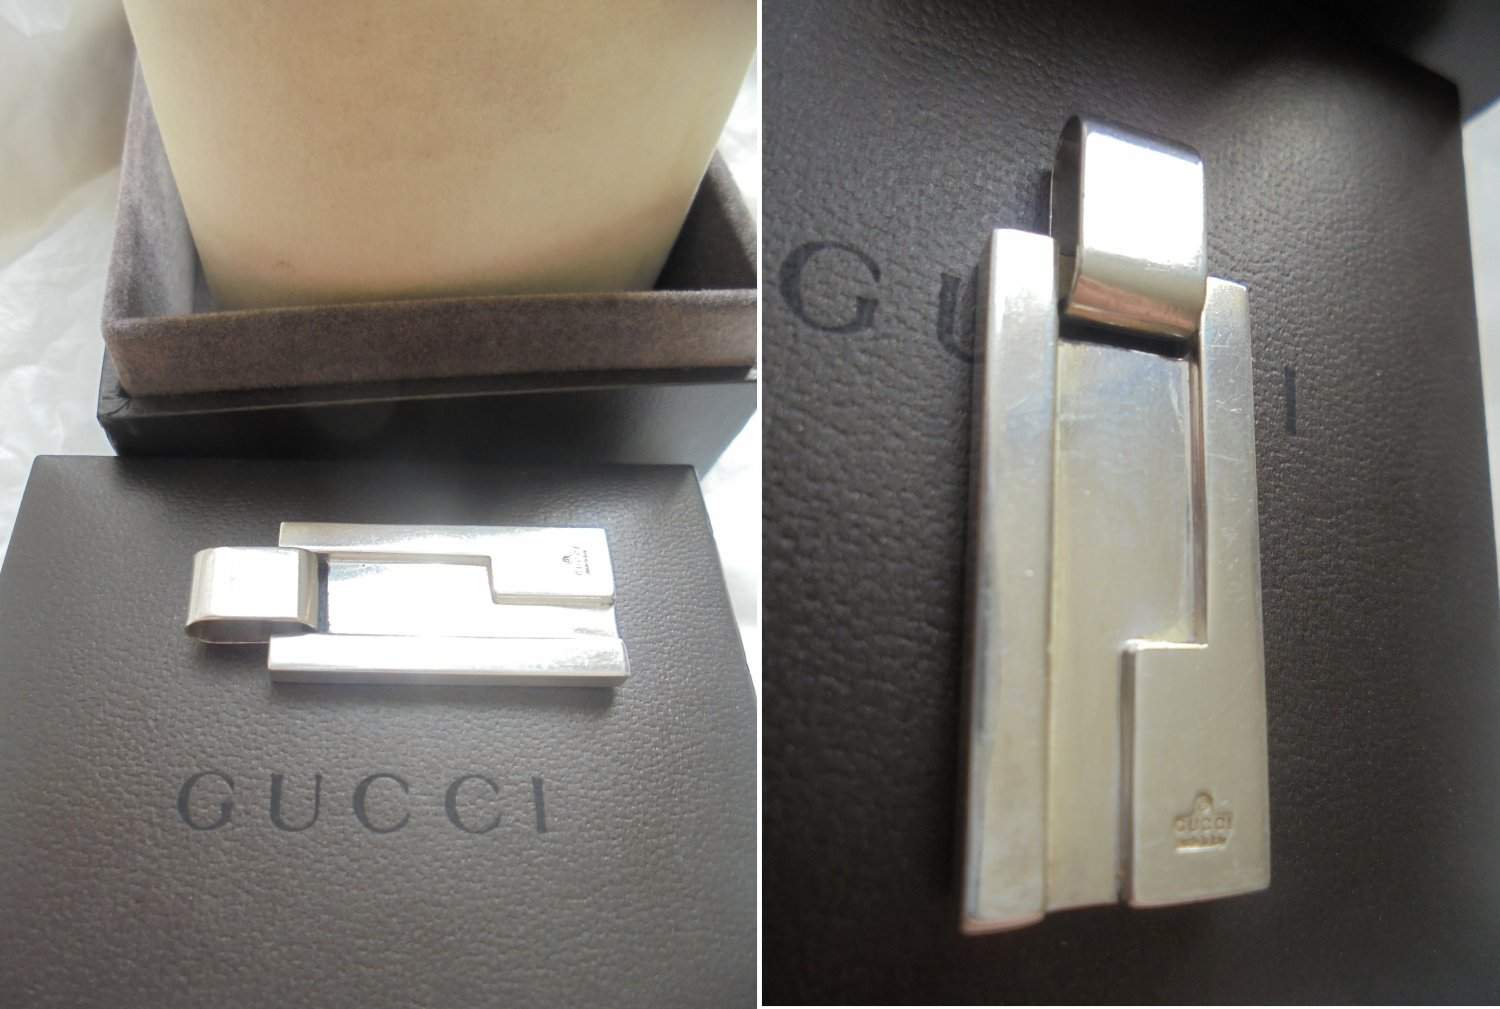 GUCCI PENDENT CHARM for necklace or bracelet in Silver sterling 925 Original in gift box 1980s